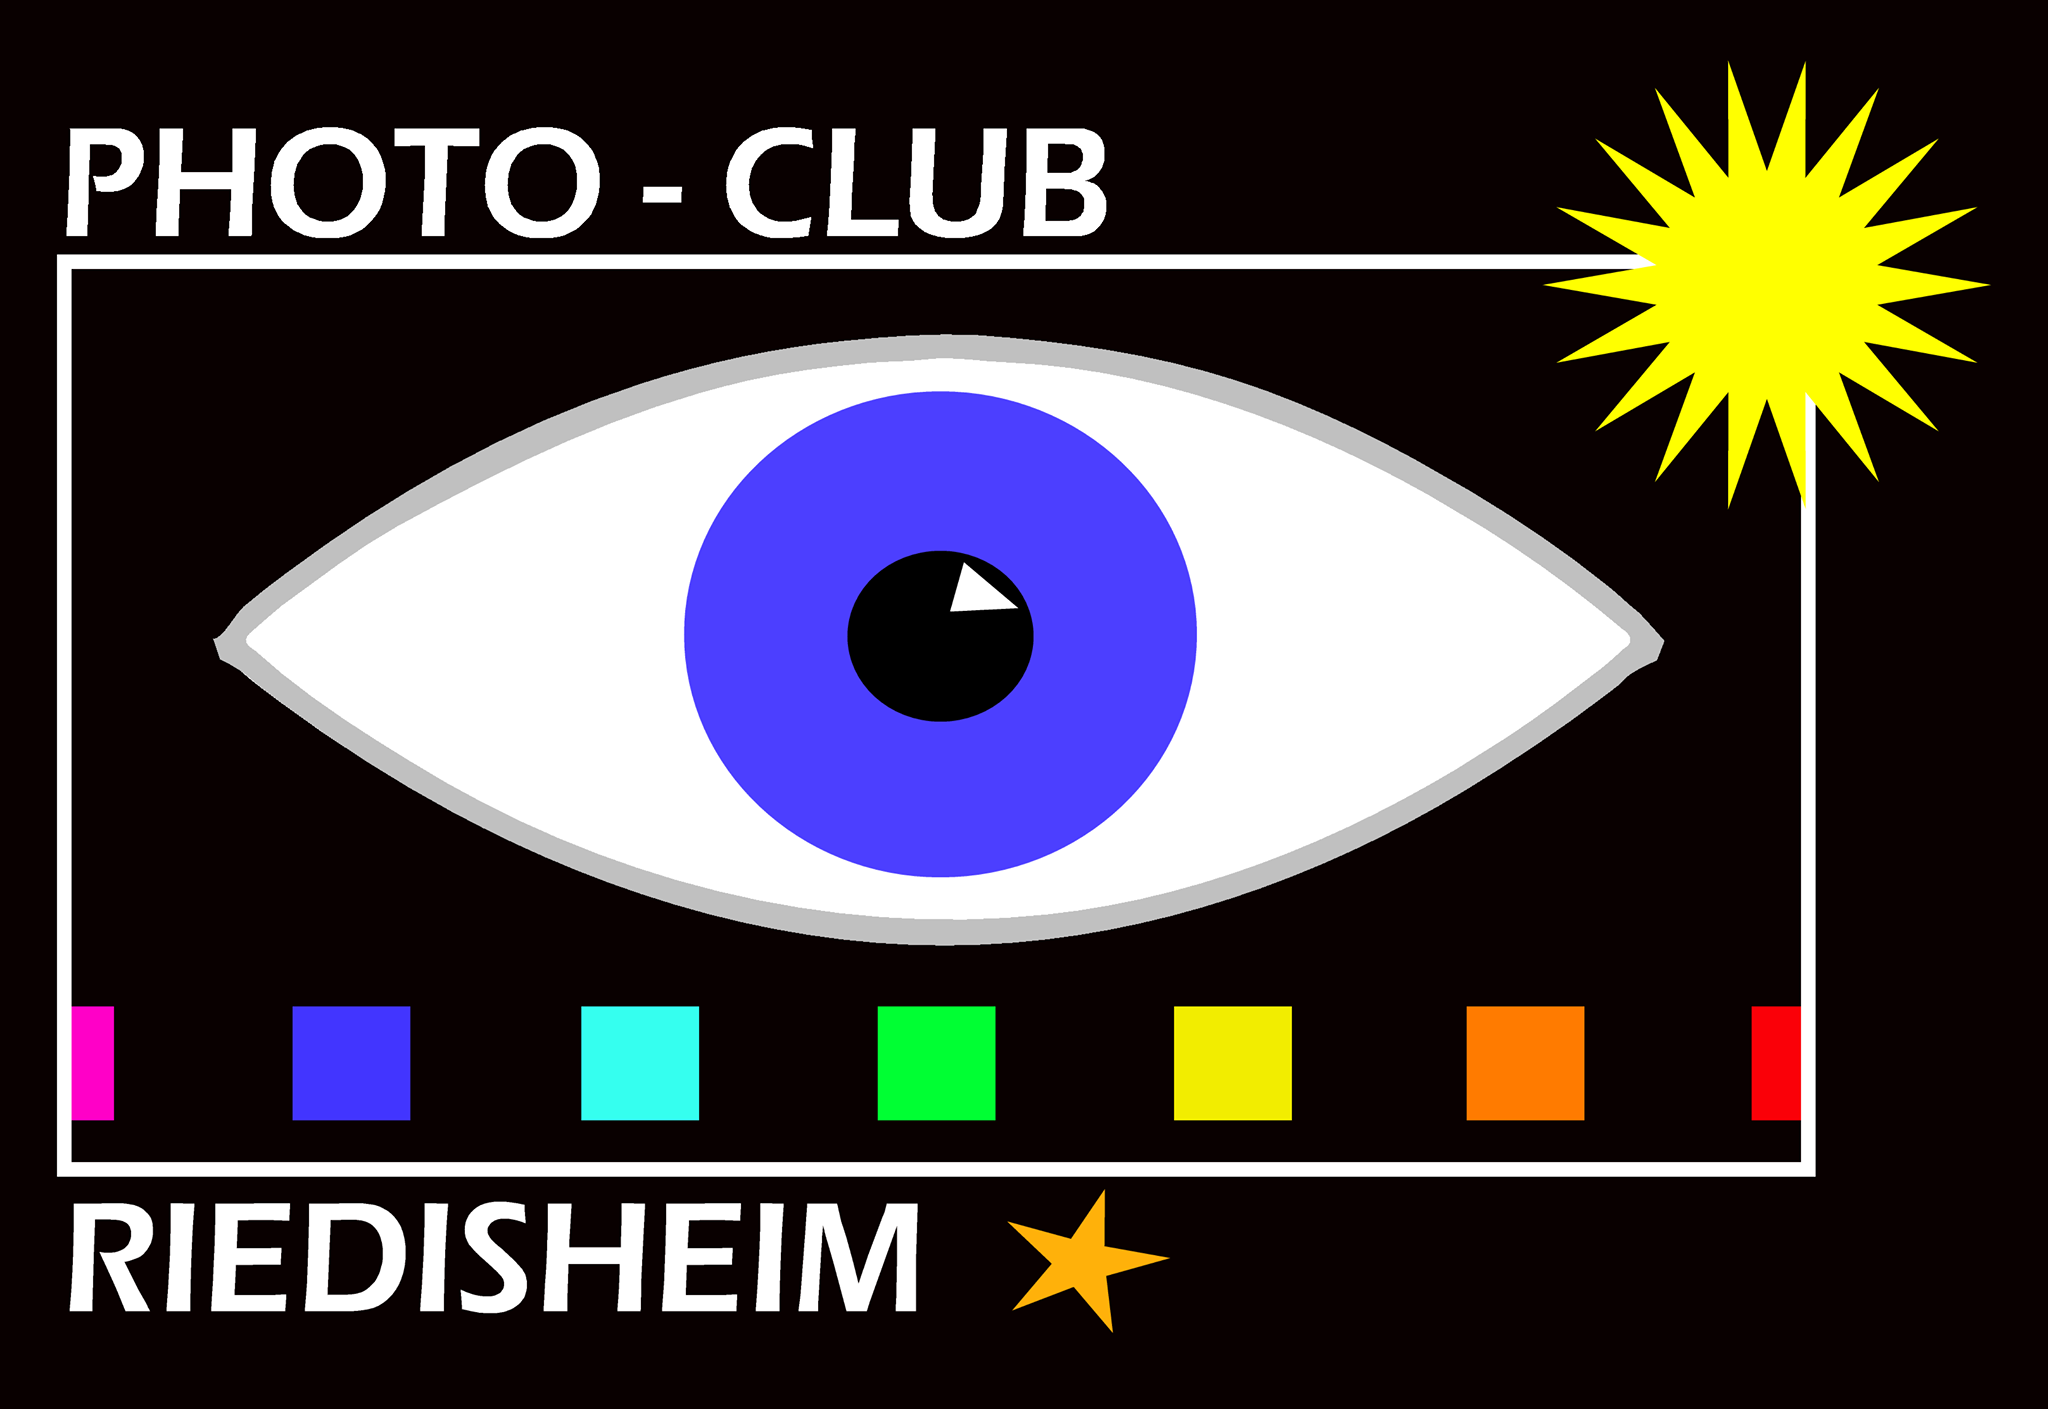 Photo Club de Riedisheim